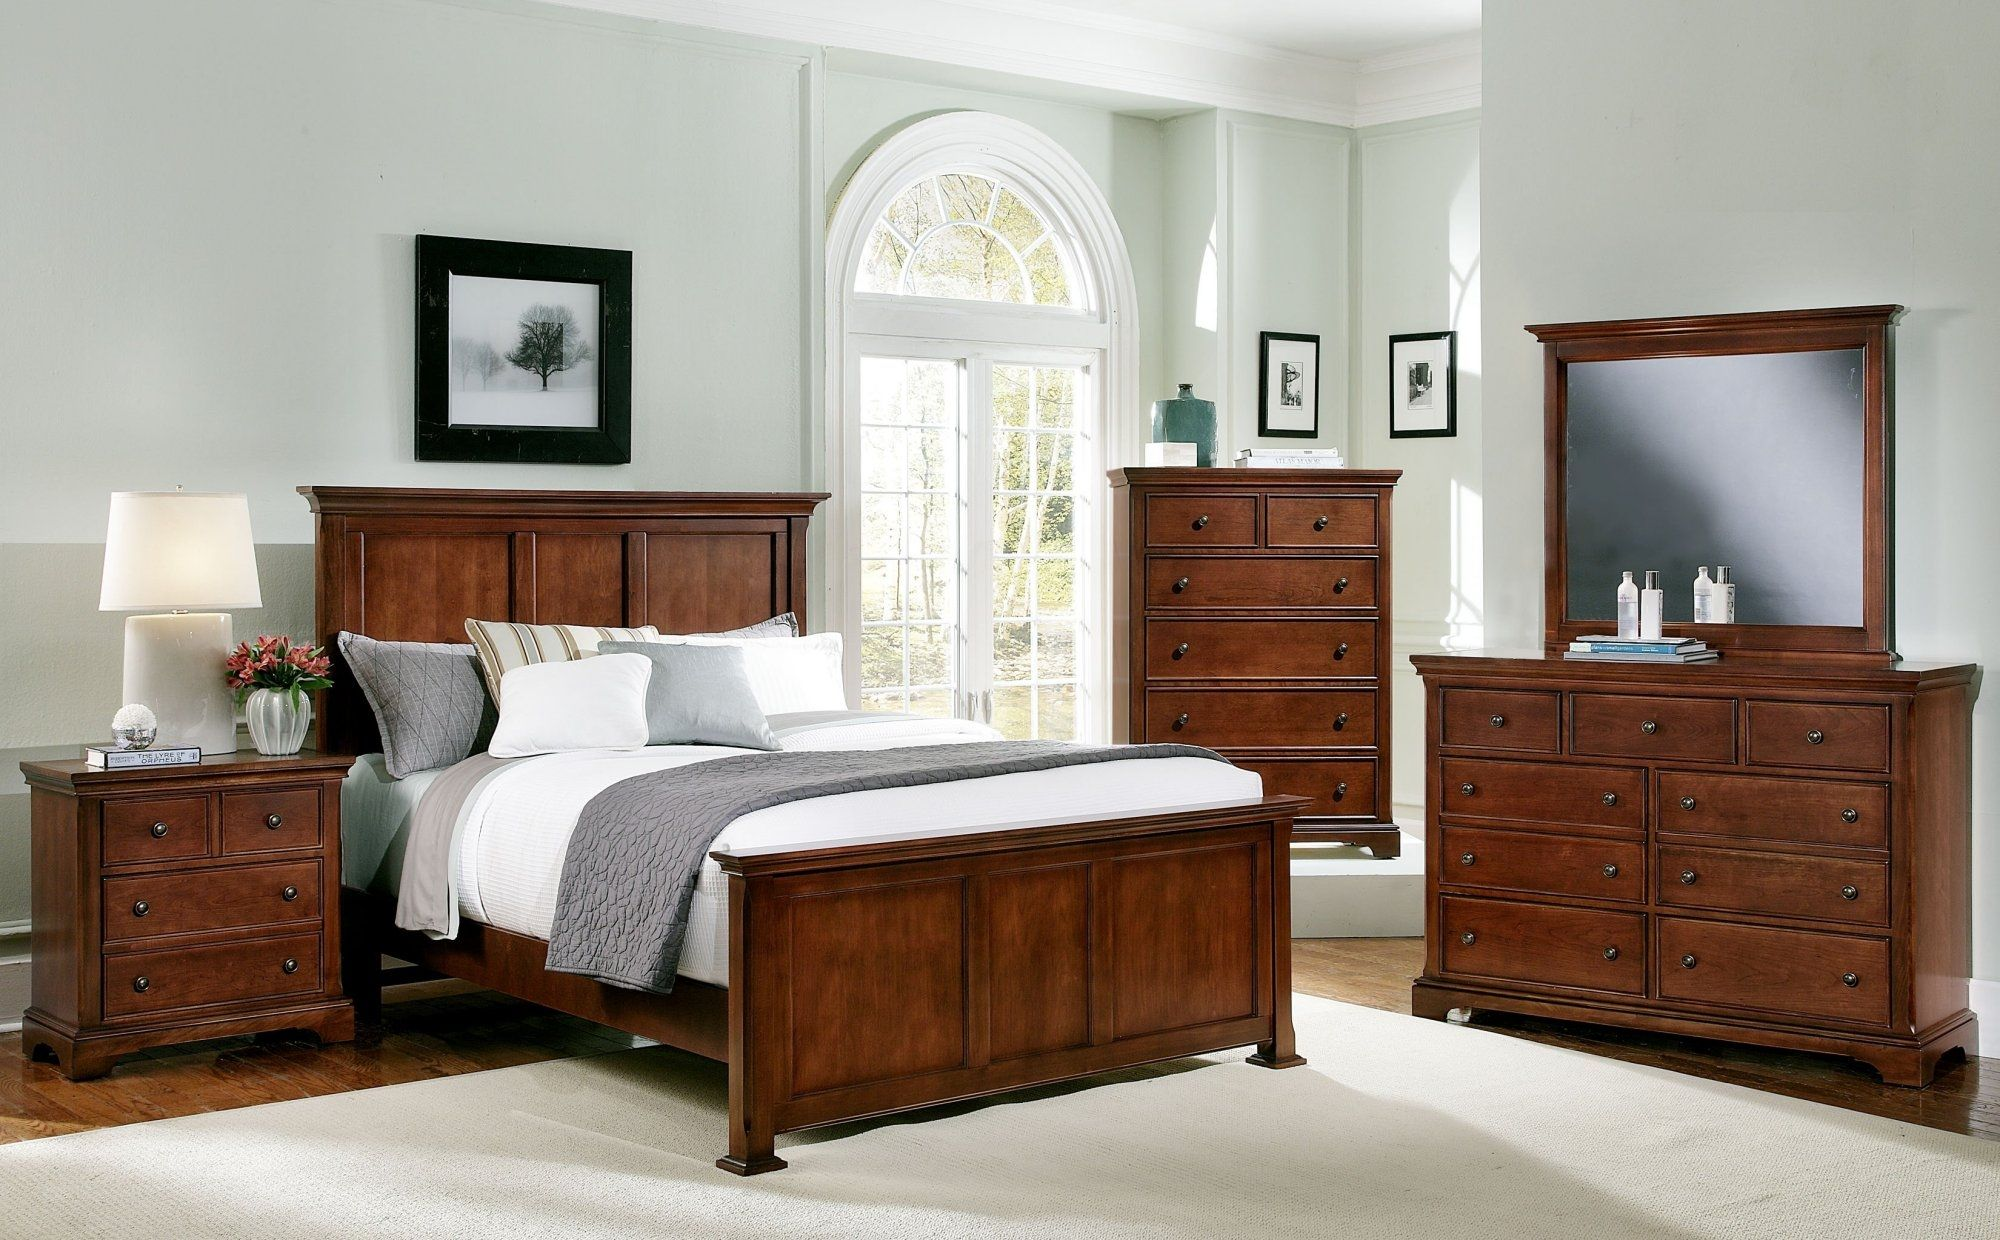 Superbe Bassett Furniture Cherry Bedroom Set